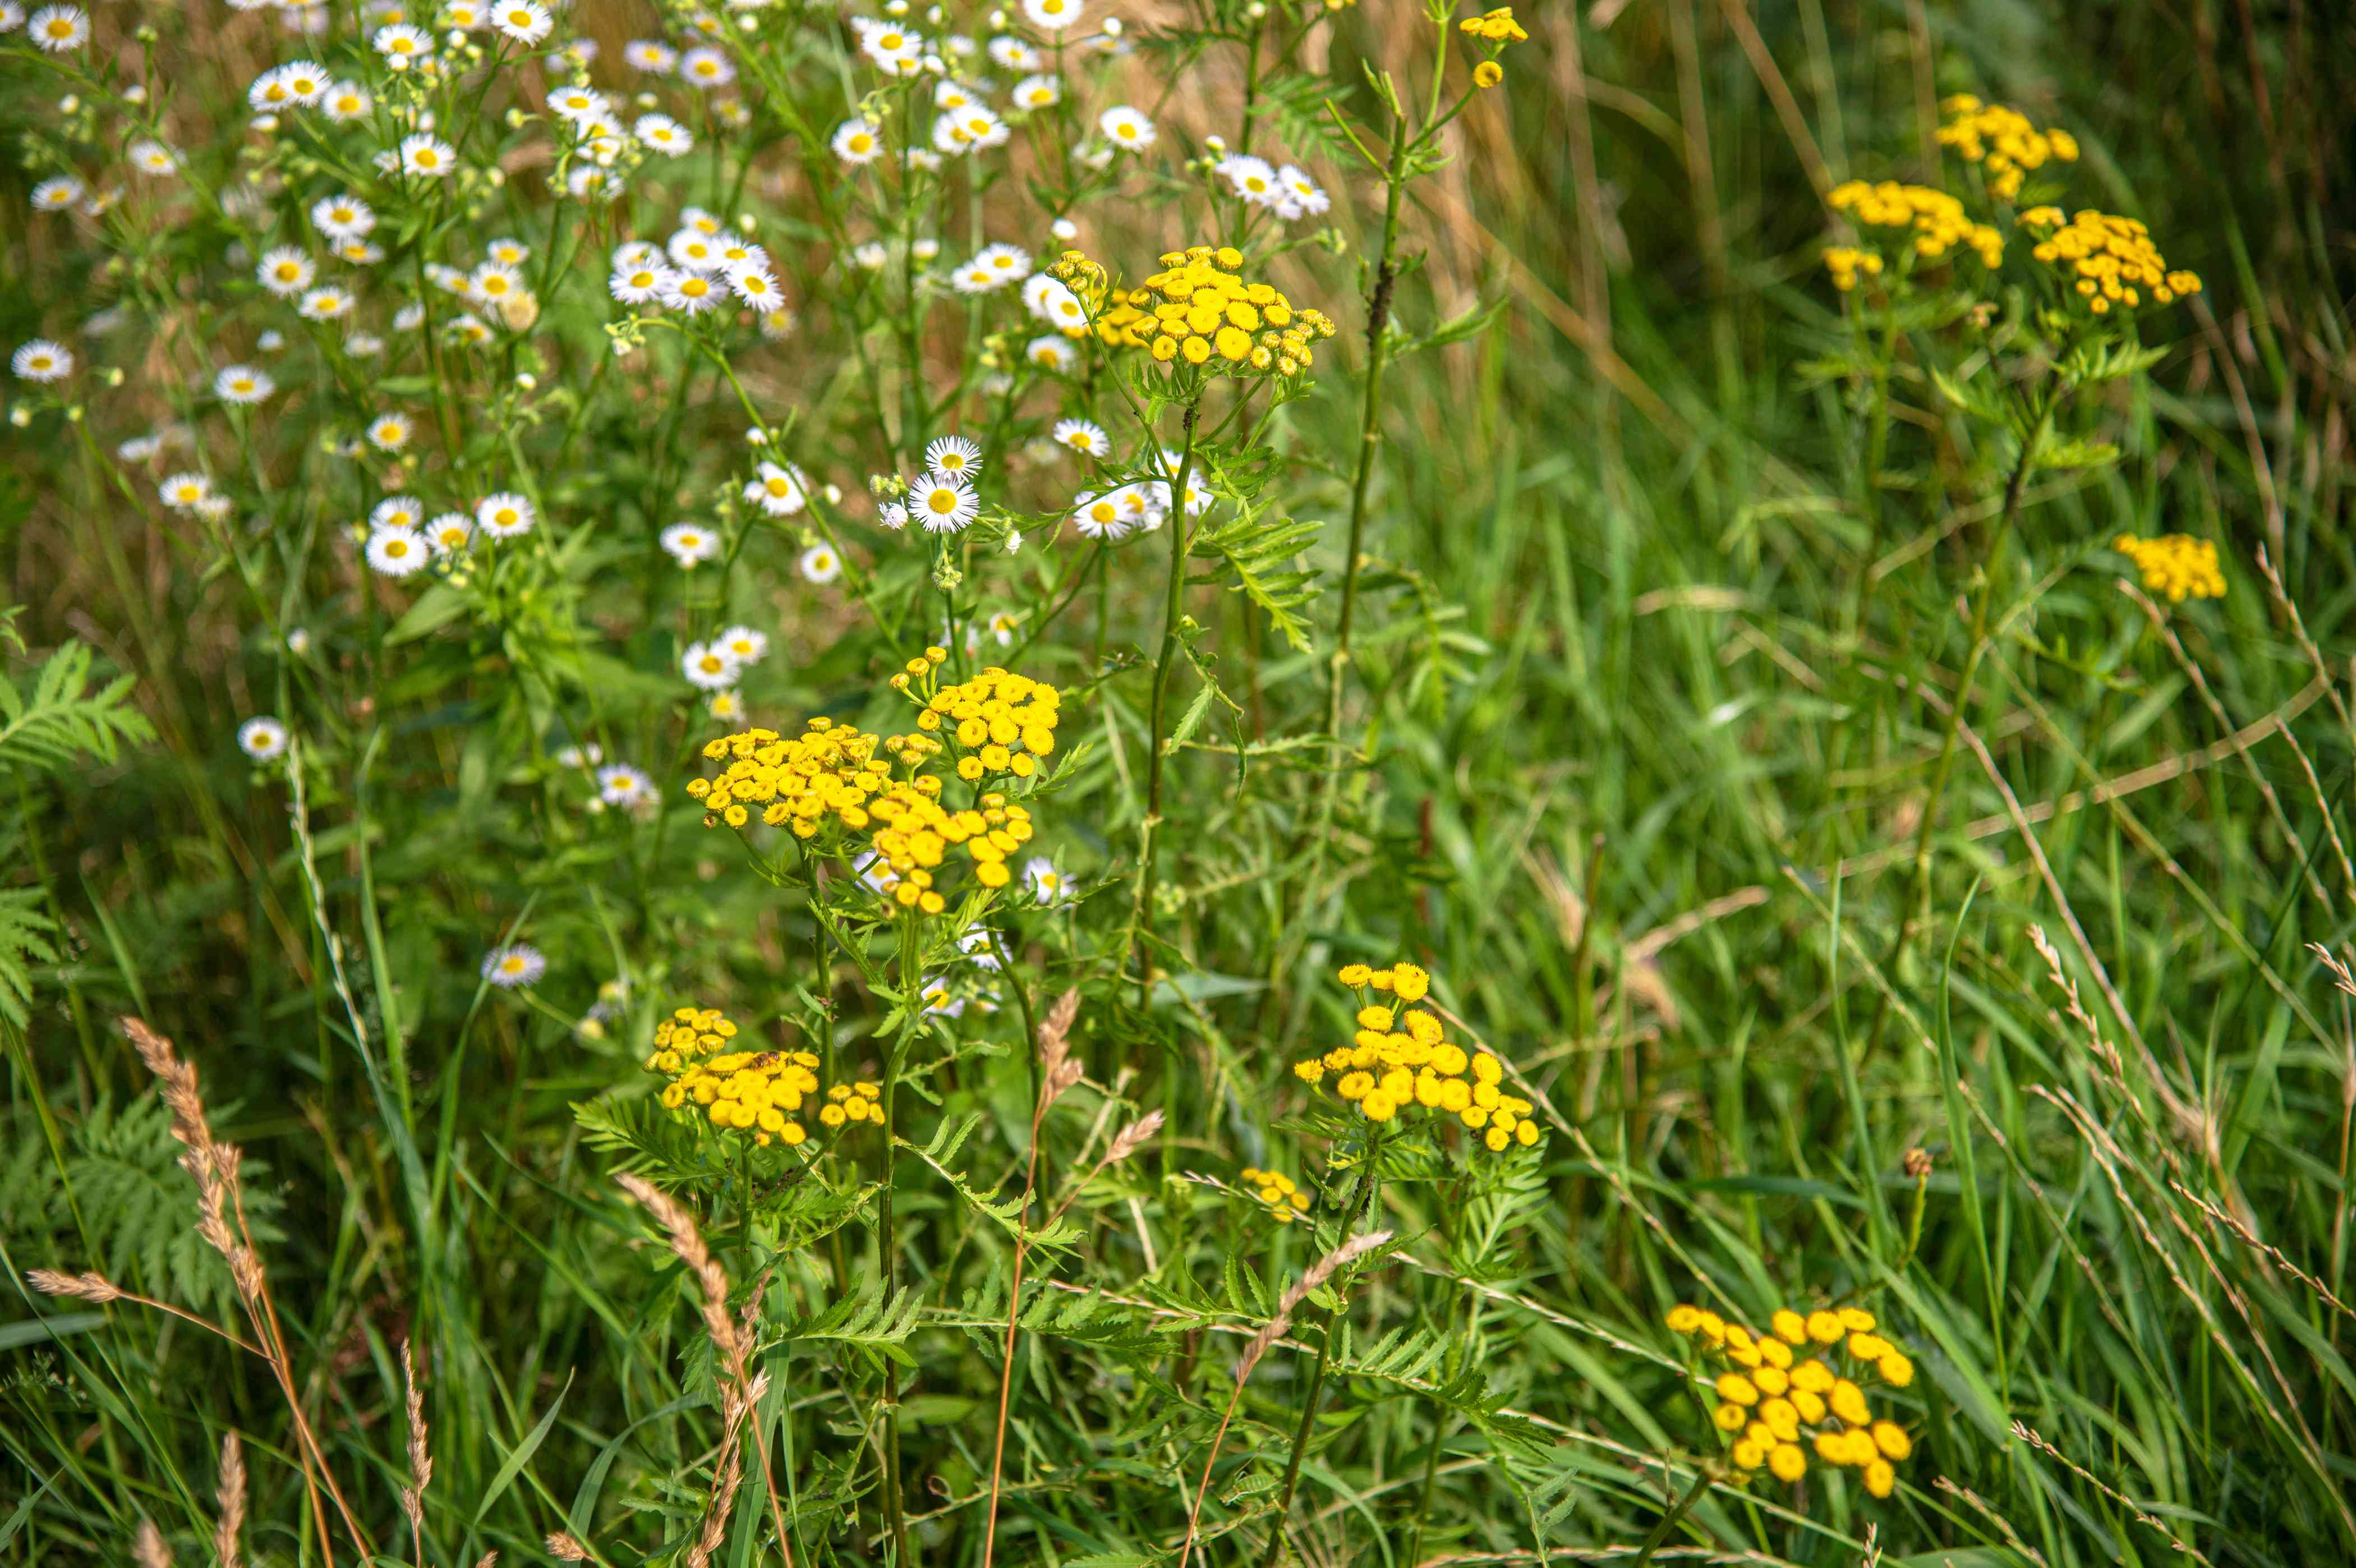 Common tansy plants with small yellow round flowers on tall and thin stems surrounded by white wildflowers and grass